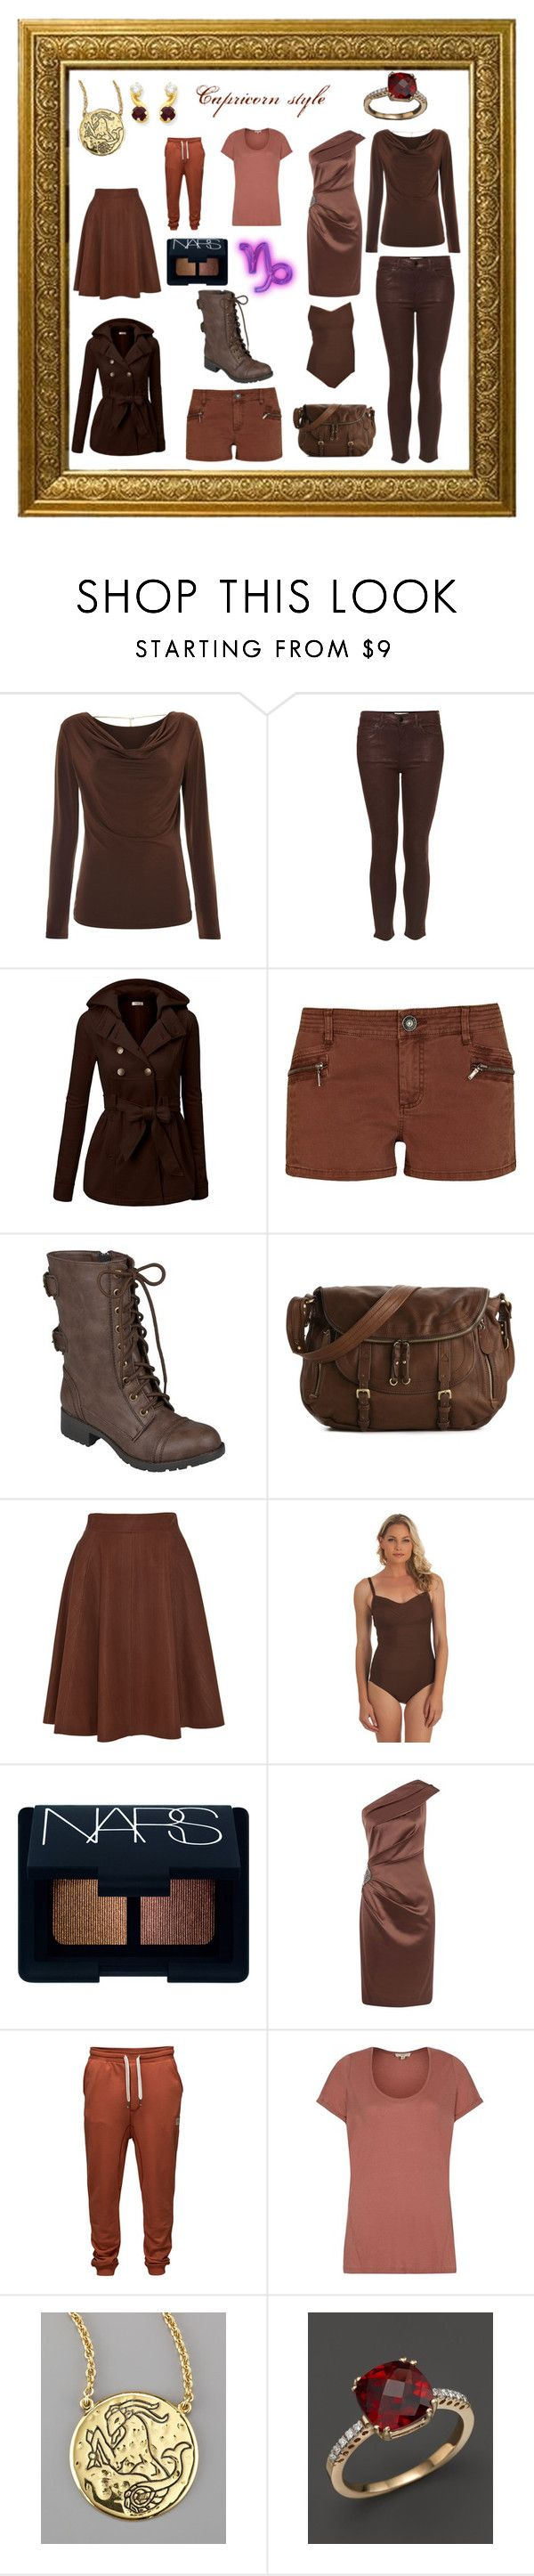 """""""Capricorn style"""" by slapyourself ❤ liked on Polyvore featuring Michael Kors, Topshop, J.TOMSON, River Island, Hailey Jeans Co., Temperley London, Athena, NARS Cosmetics, Planet and Jack & Jones"""